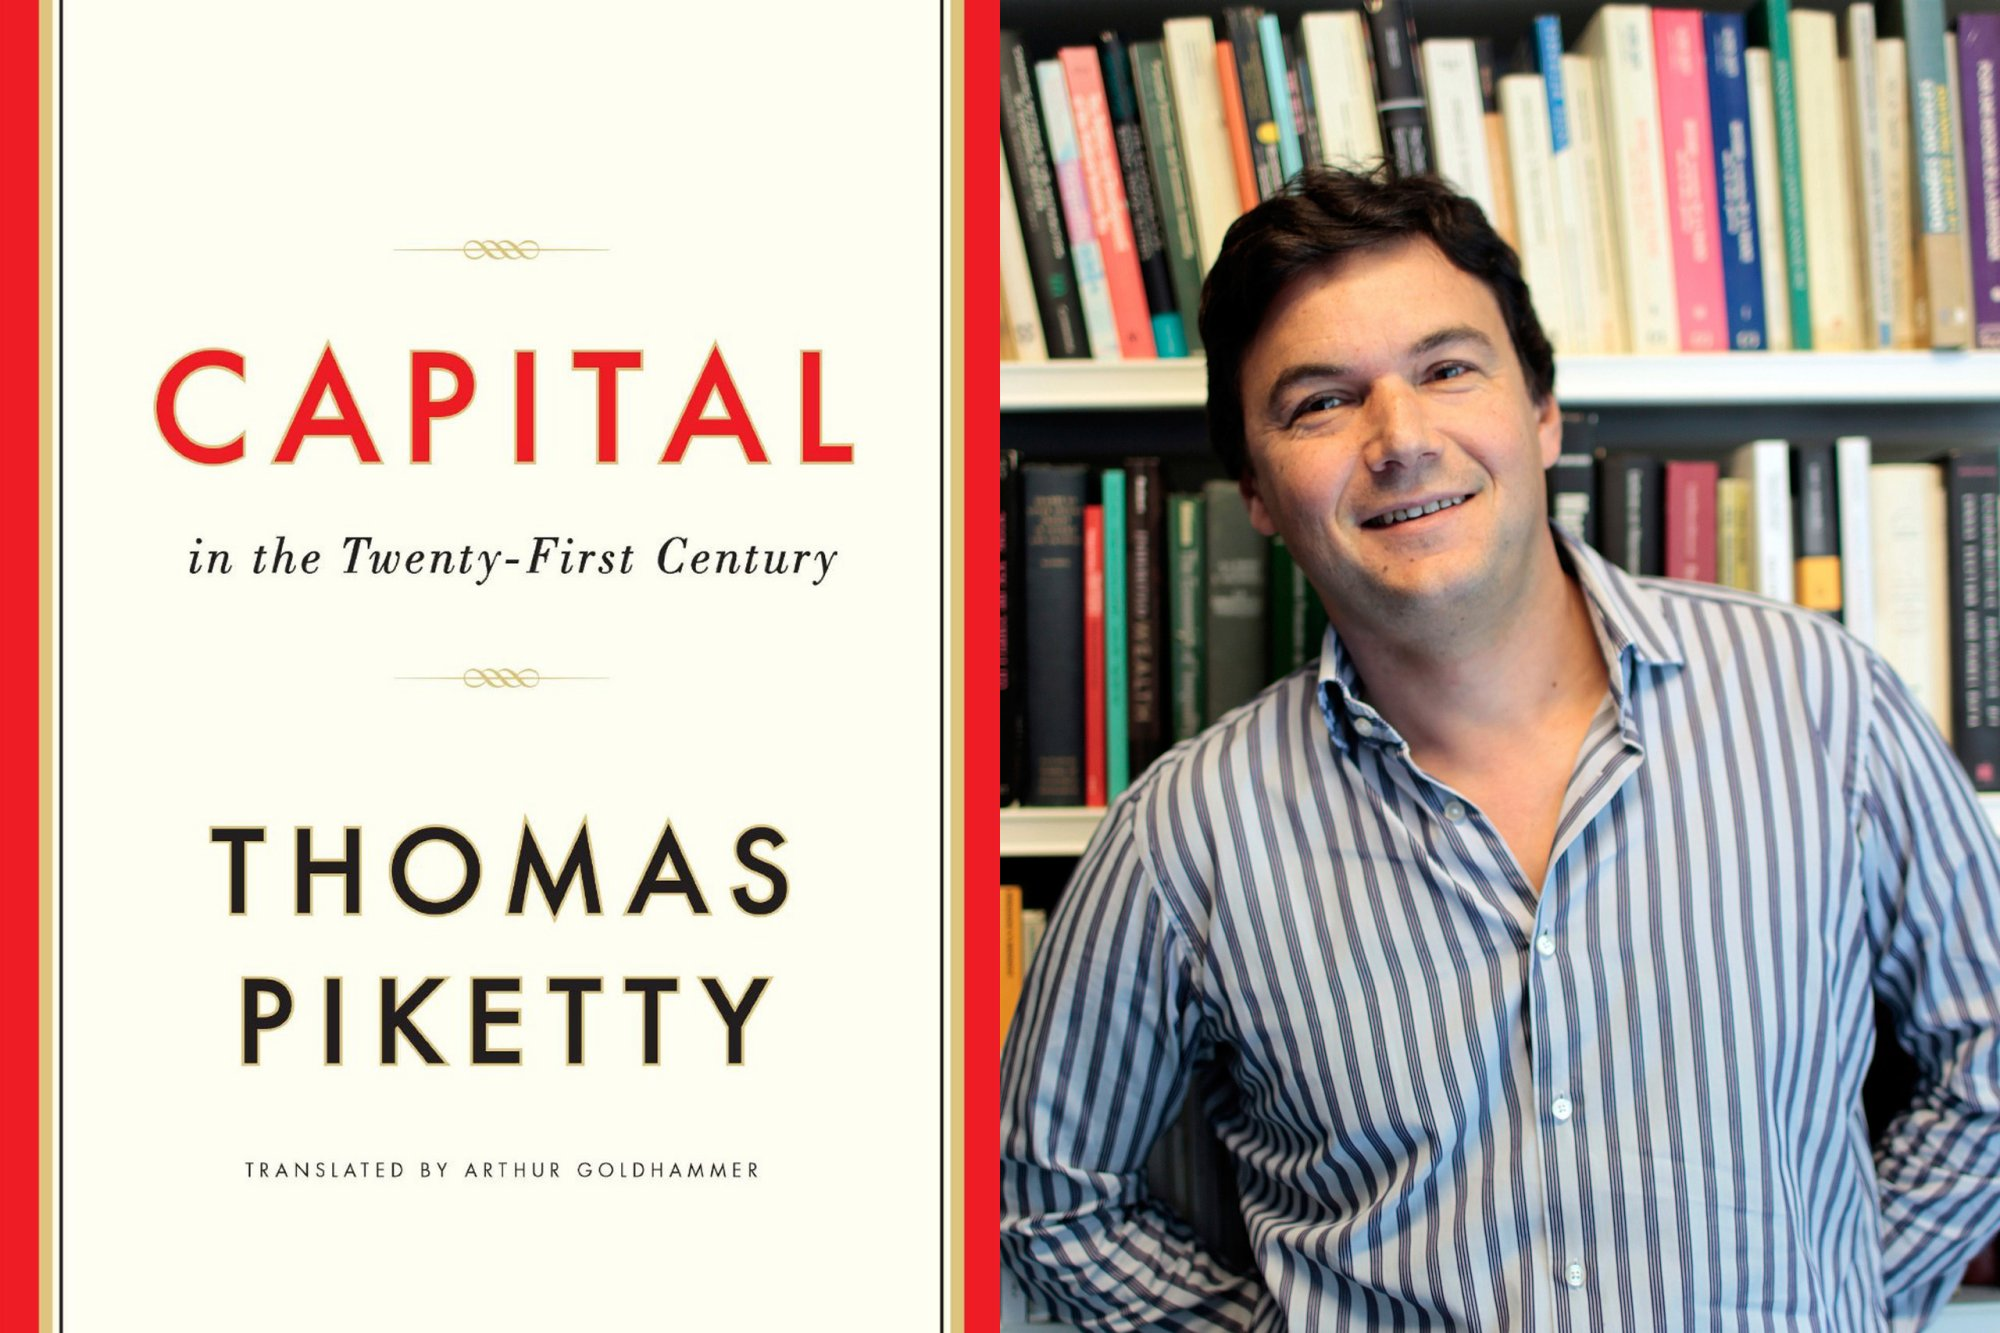 Capital in the 21st century critique